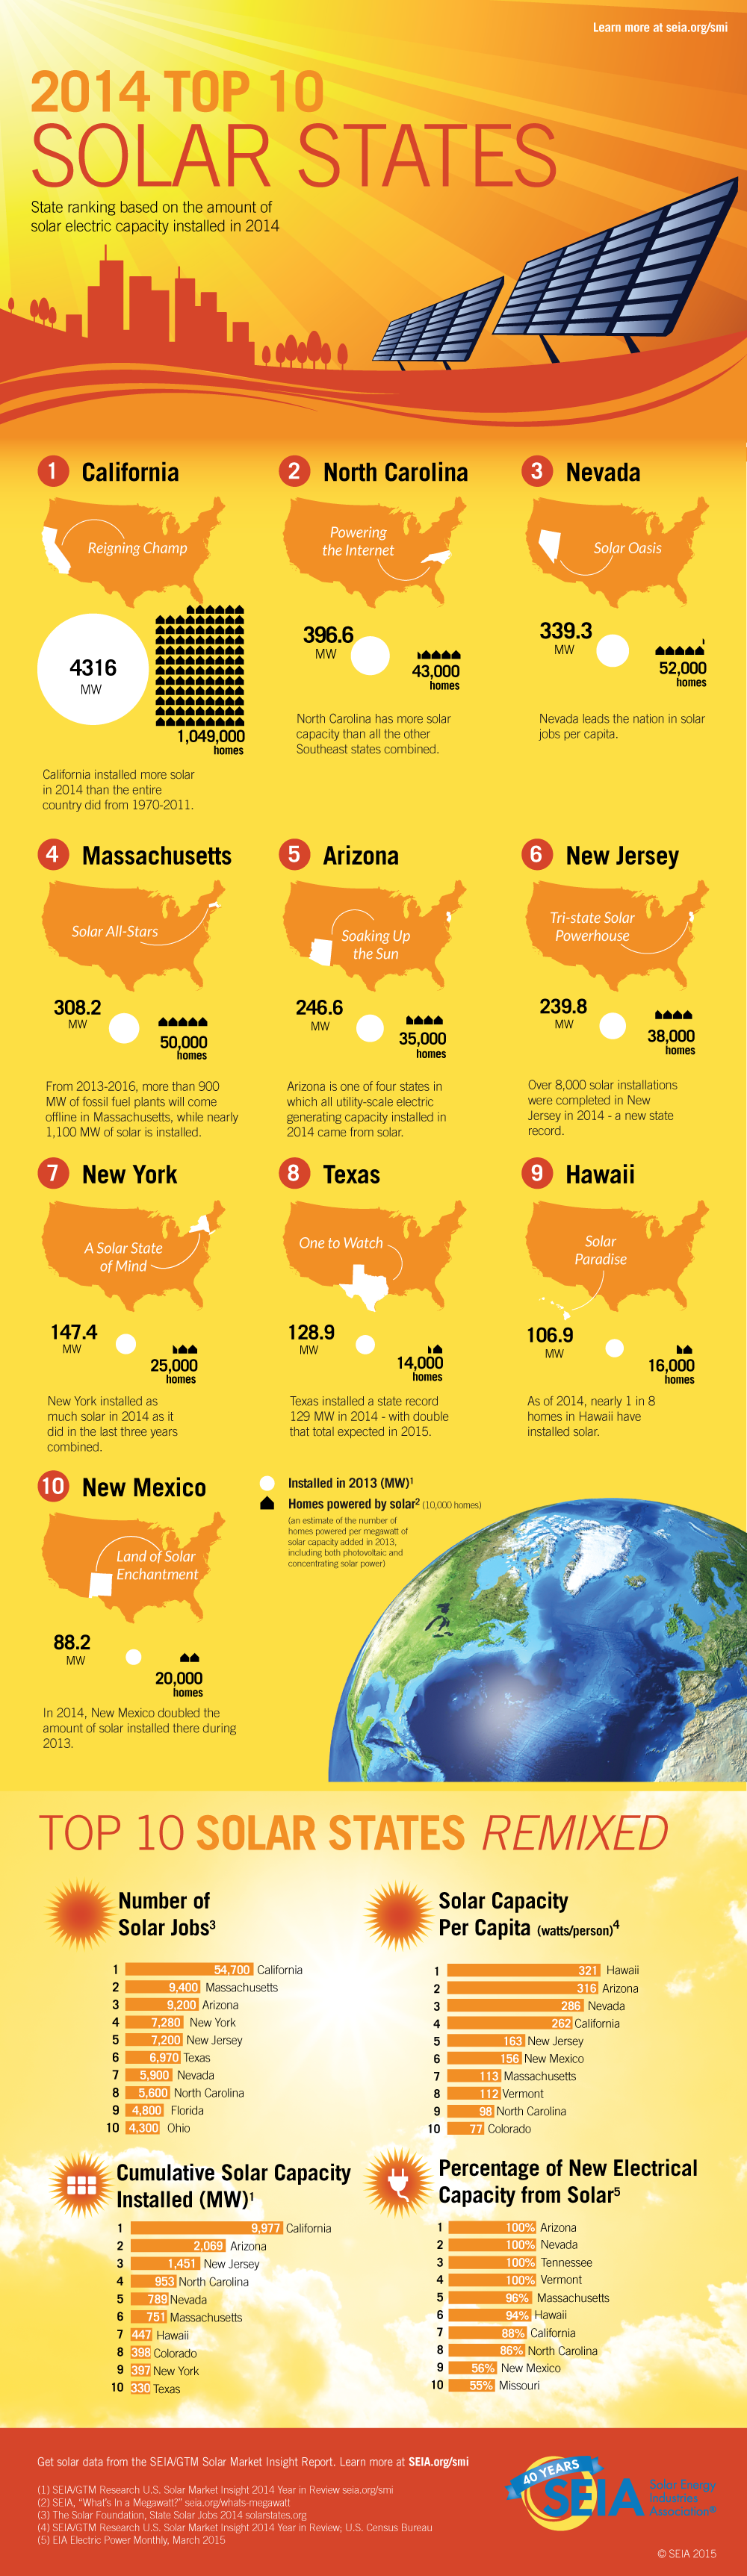 2014 Top 10 Solar States Seia Infographic Ranks Top 10 Solar States Based On Solar Capacity Installed In 2014 Includes Solar Facts Solar Geothermal Energy